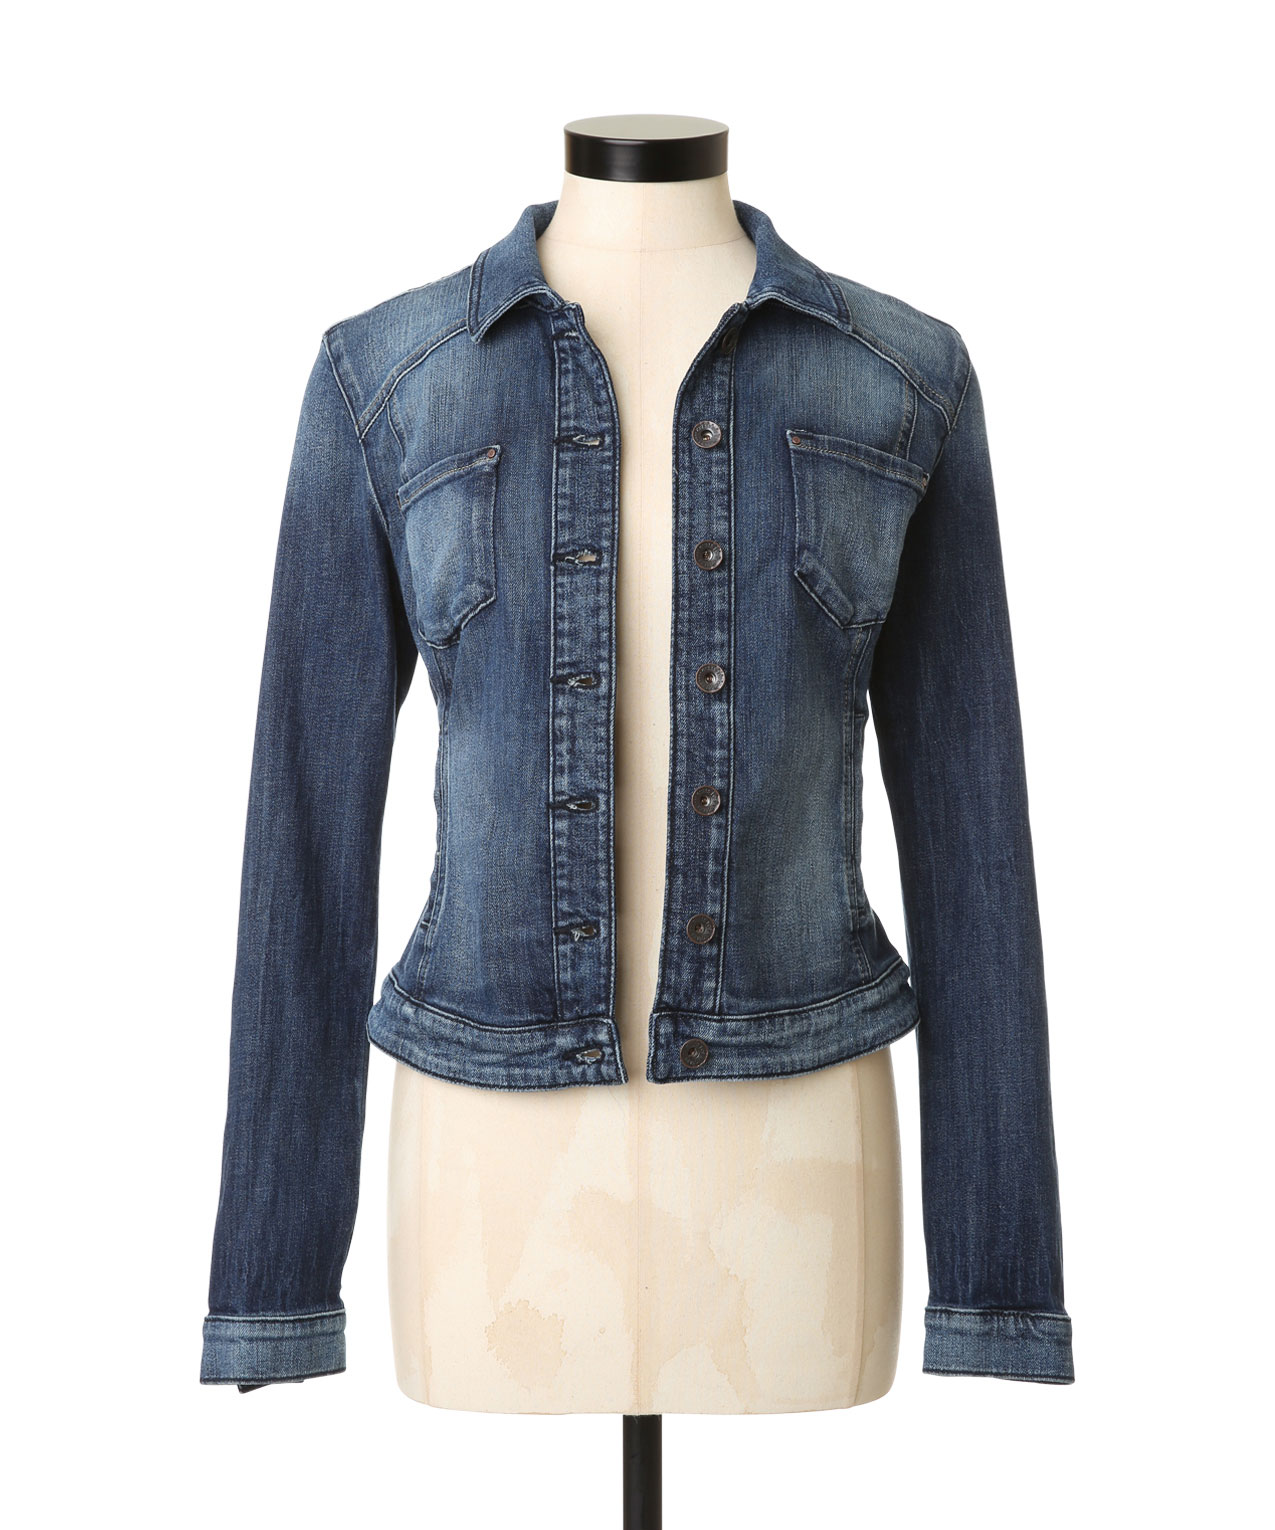 Fitted jean jackets for women